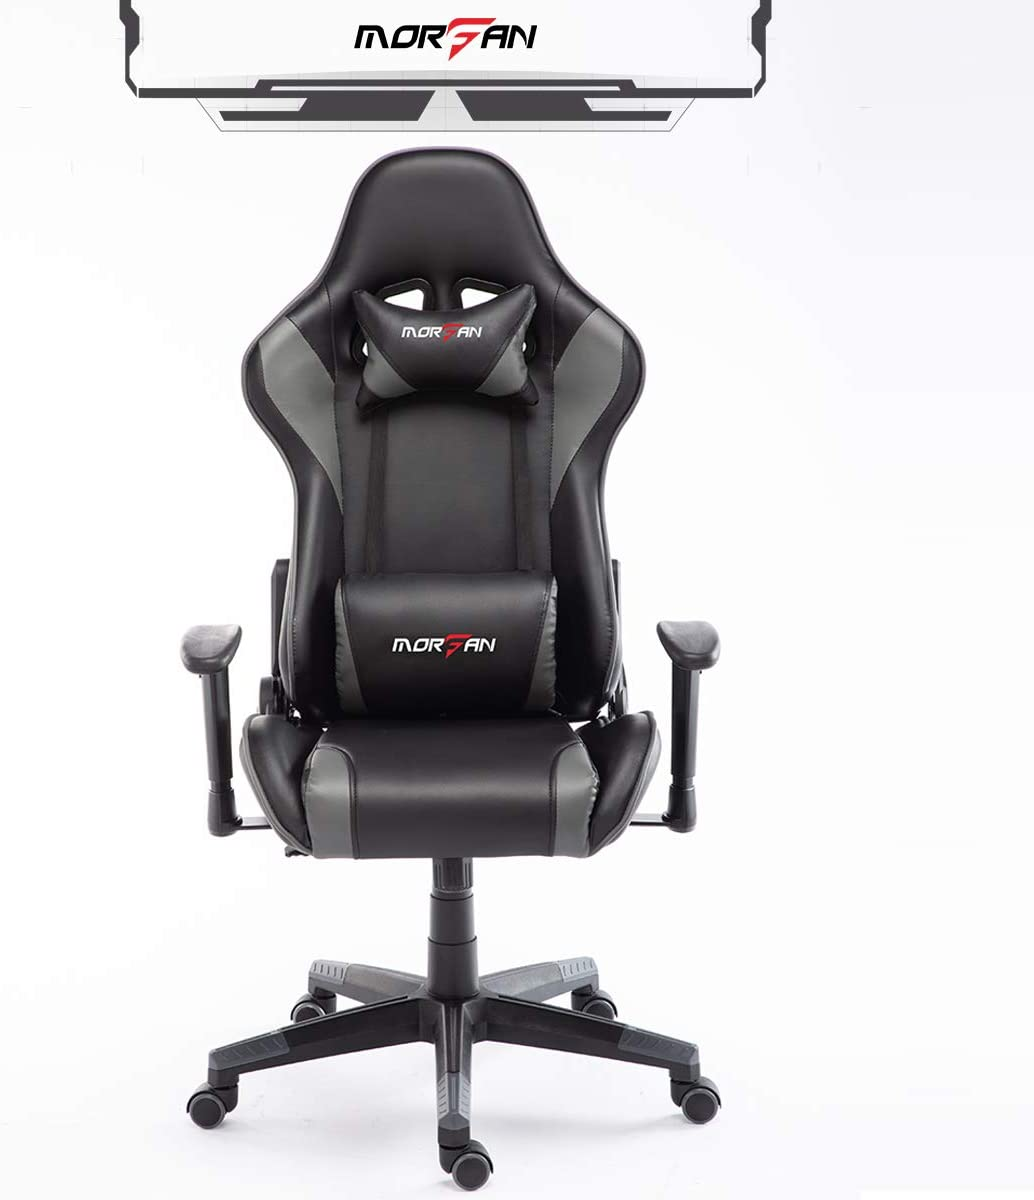 Morfan Computer Desk Chair for Game Fashion and Ergonomic Massage Rocking Function E-Sports Racing Chair with Free Headrest Pillow Lumbar Cushion F Series Grey